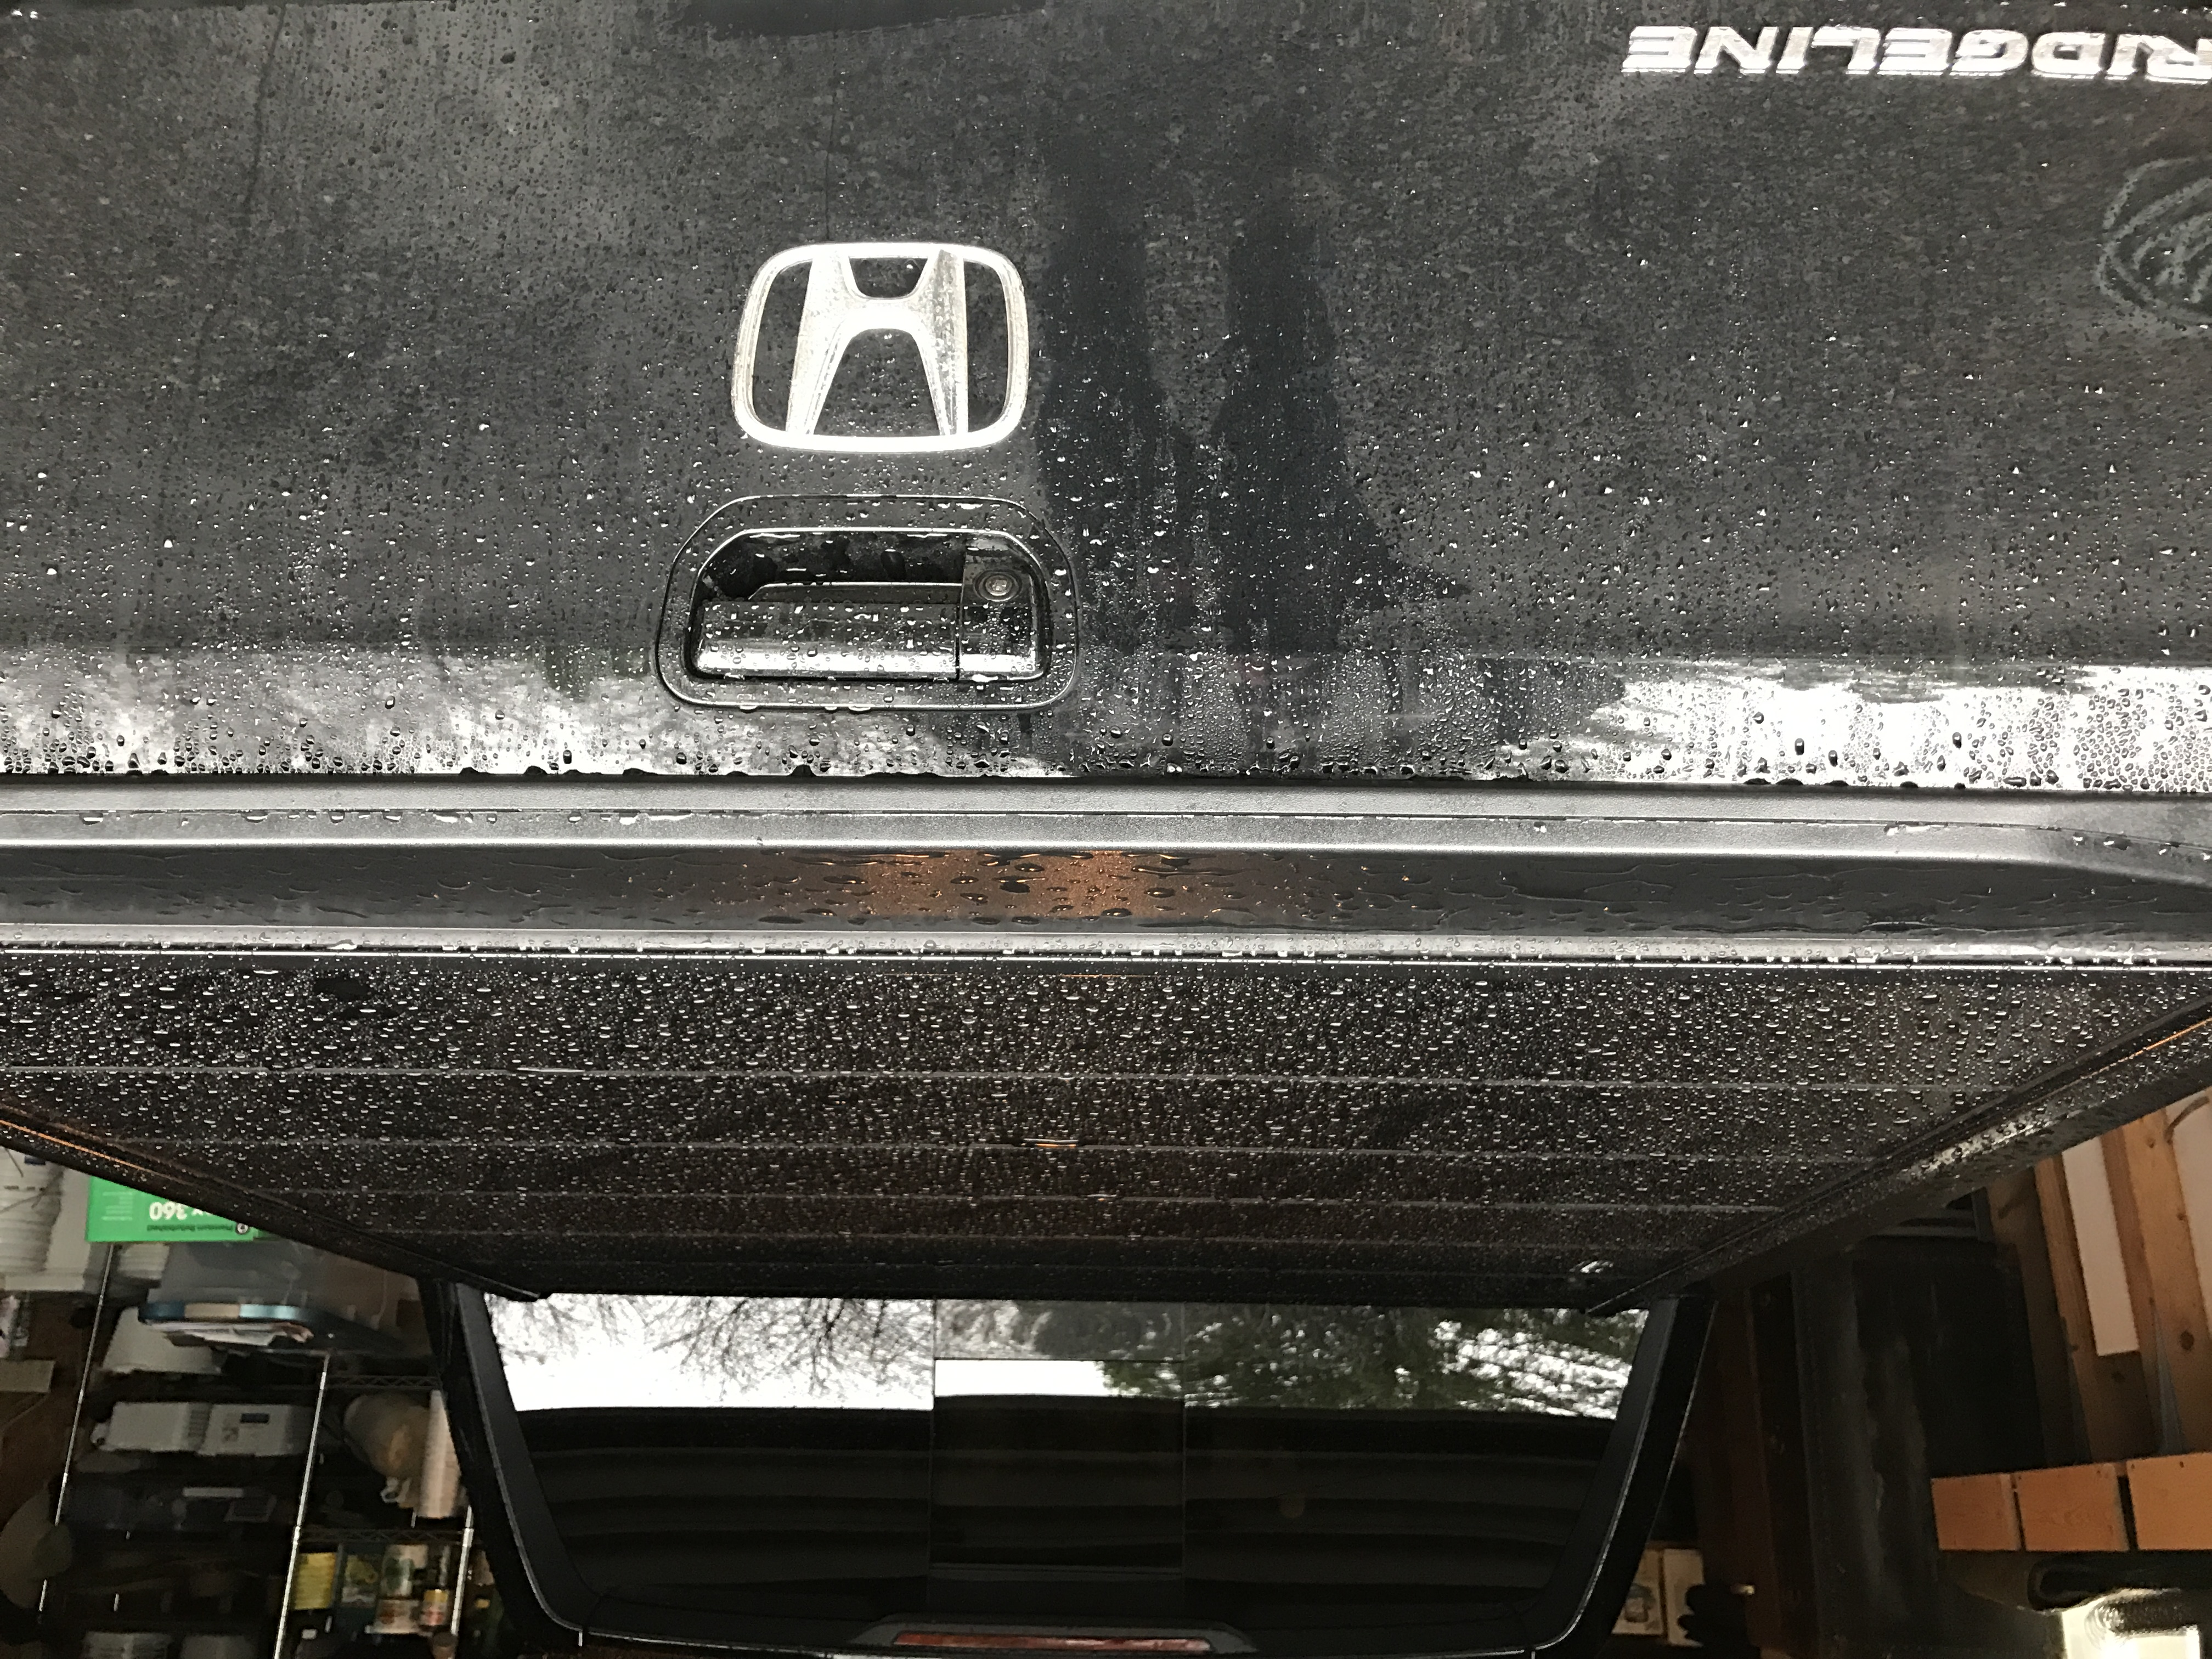 Honda Ridgeline Bed Tonneau Cover For Your Truck Peragon